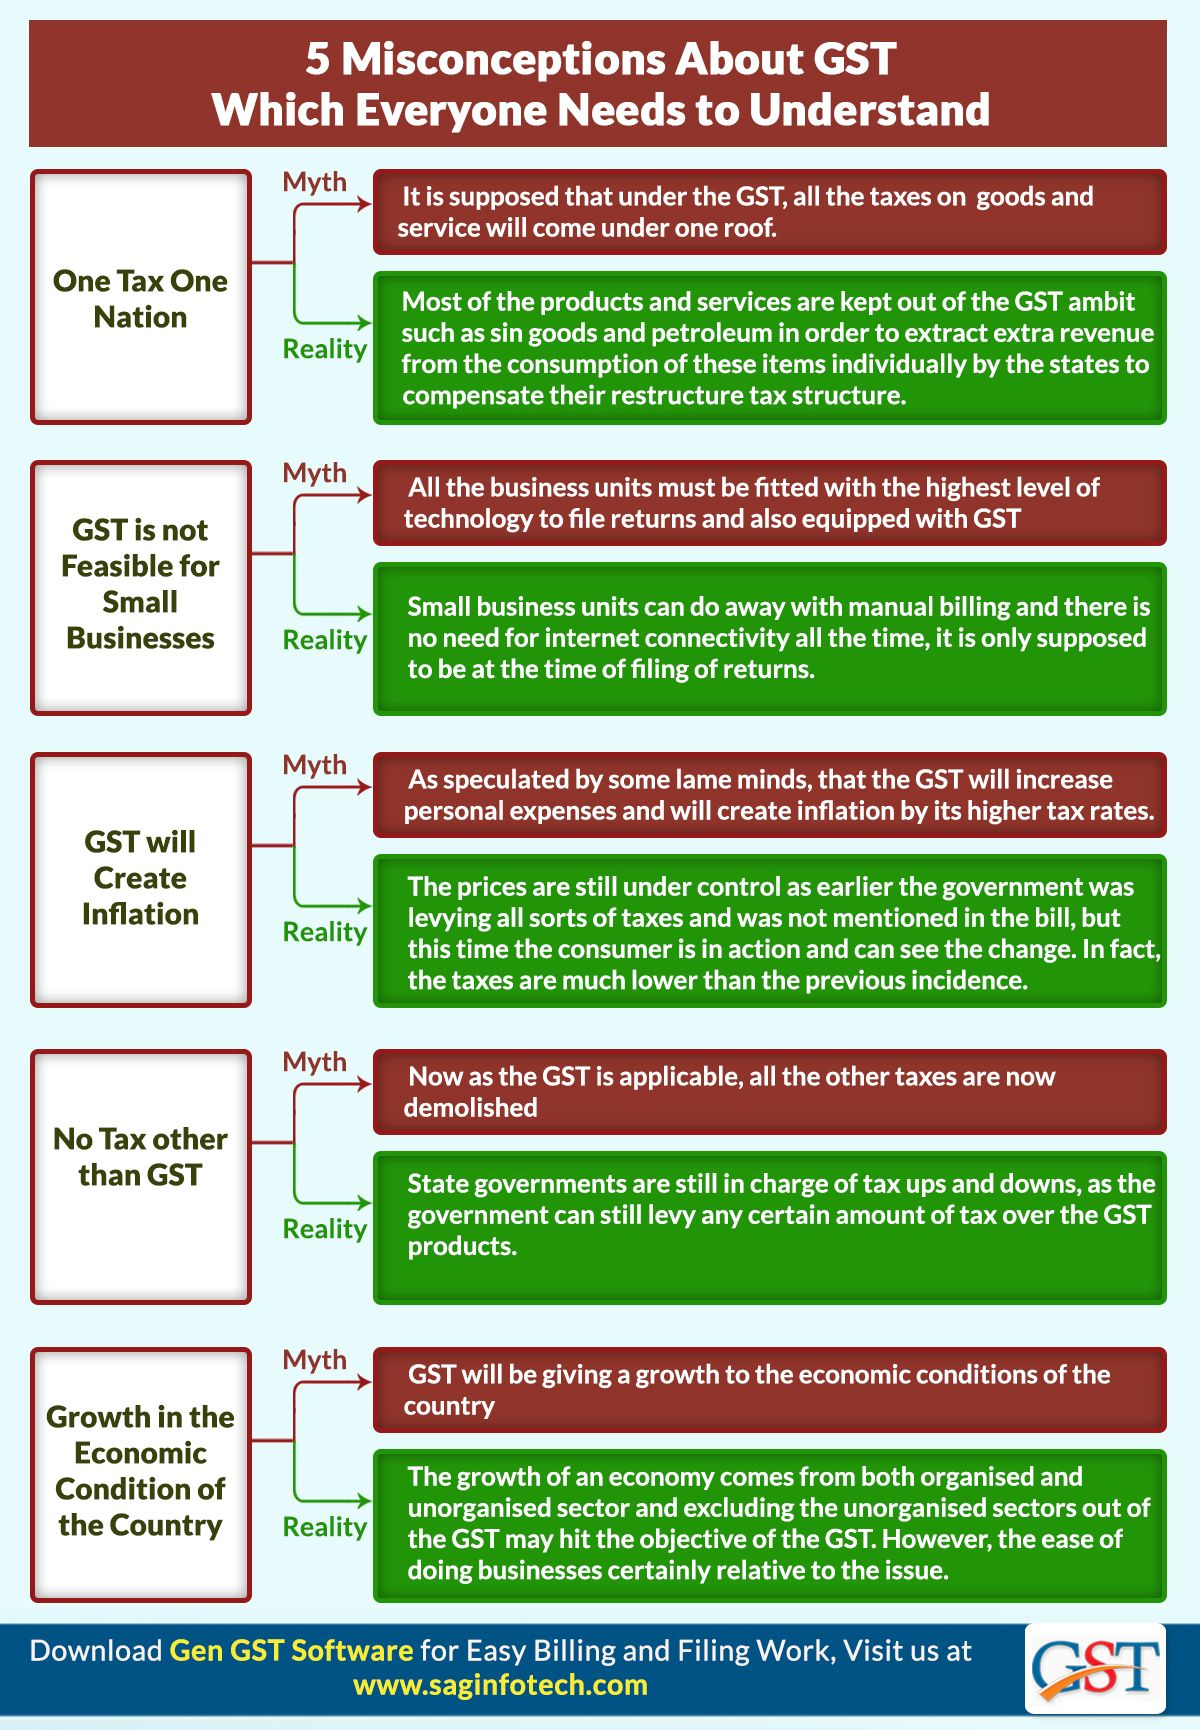 5 Misconceptions About GST Which Everyone Needs to Understand